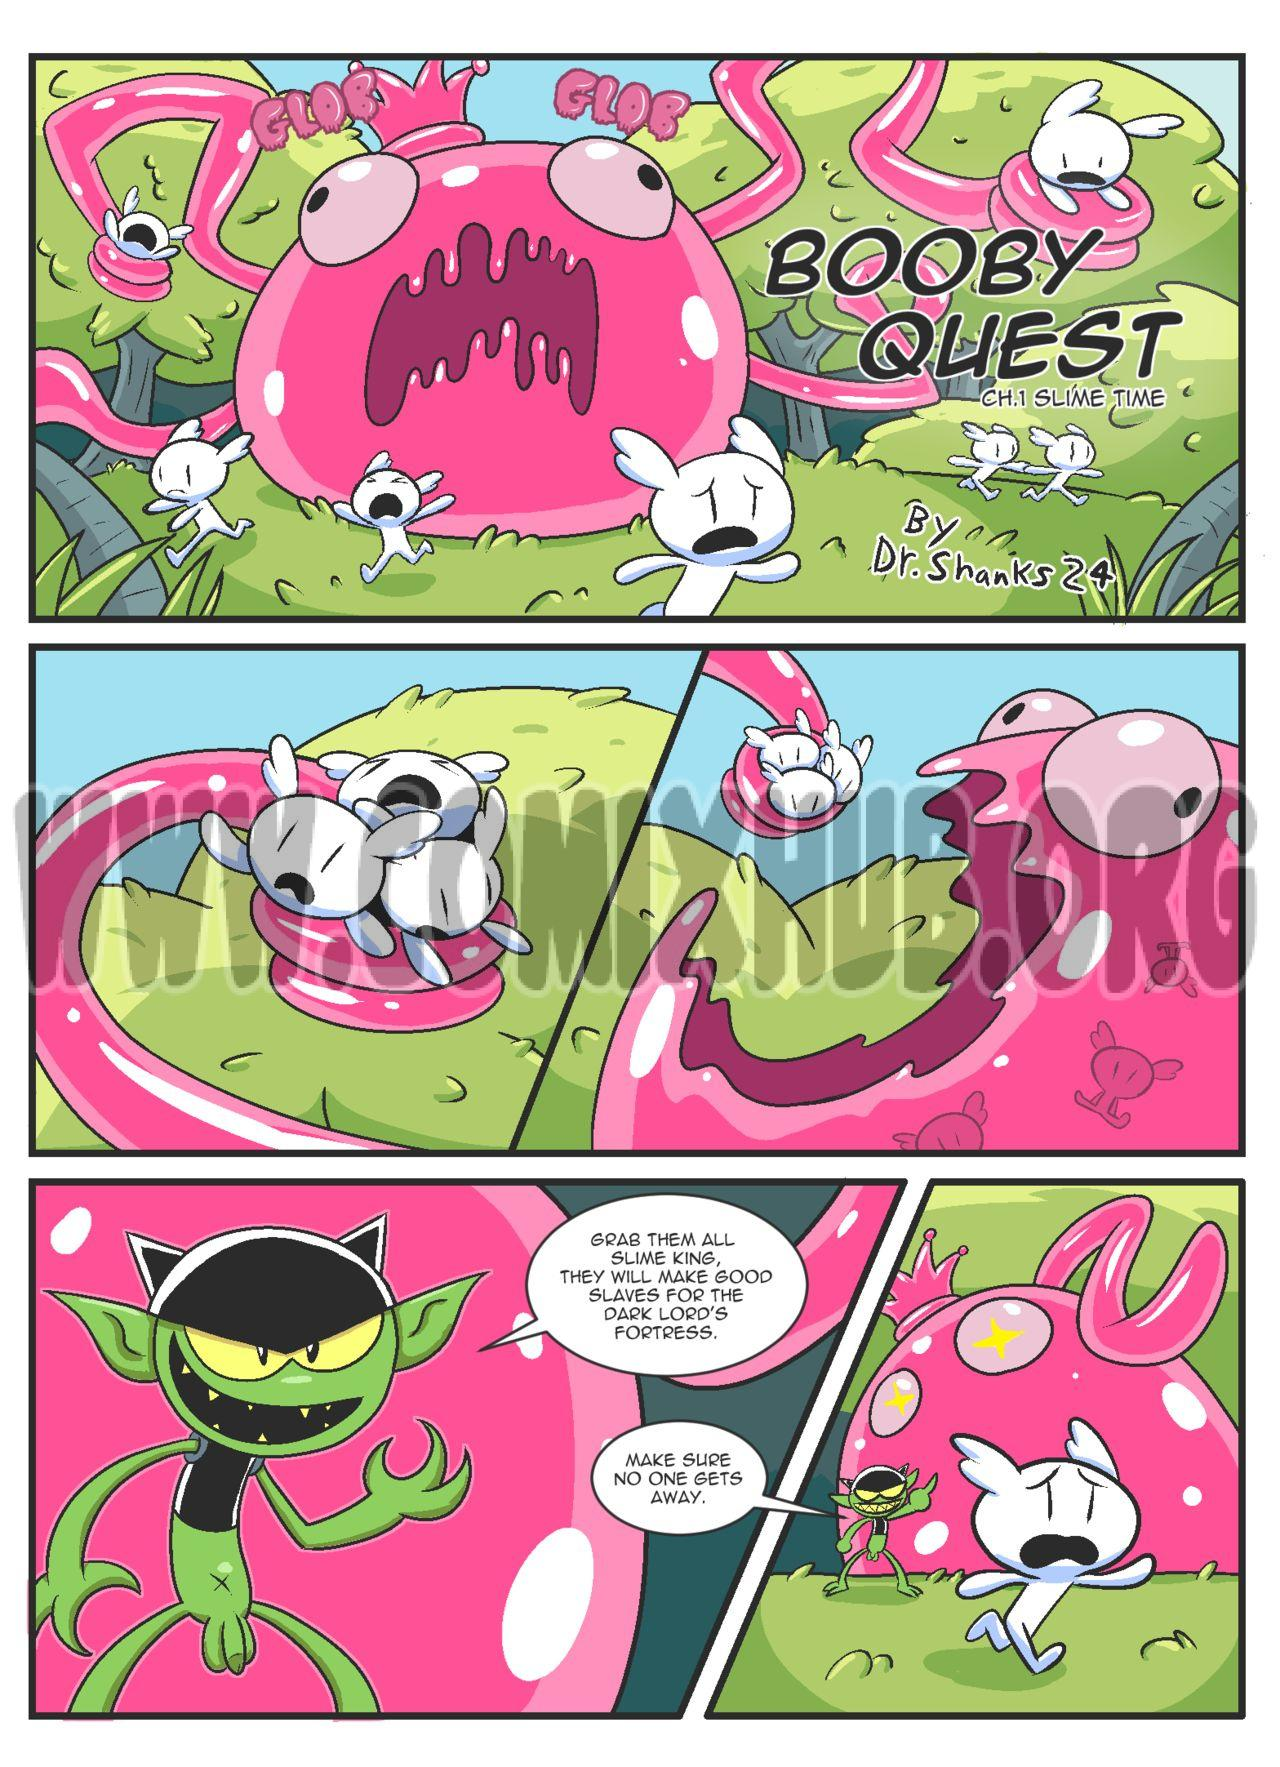 Booby Quest 1-4 porn comics Oral sex, Anal Sex, Blowjob, Creampie, Cum Swallow, Deepthroat, Double Penetration, Fantasy, Group Sex, Rape, Sex and Magic, Stockings, Straight, Tentacles, Threesome